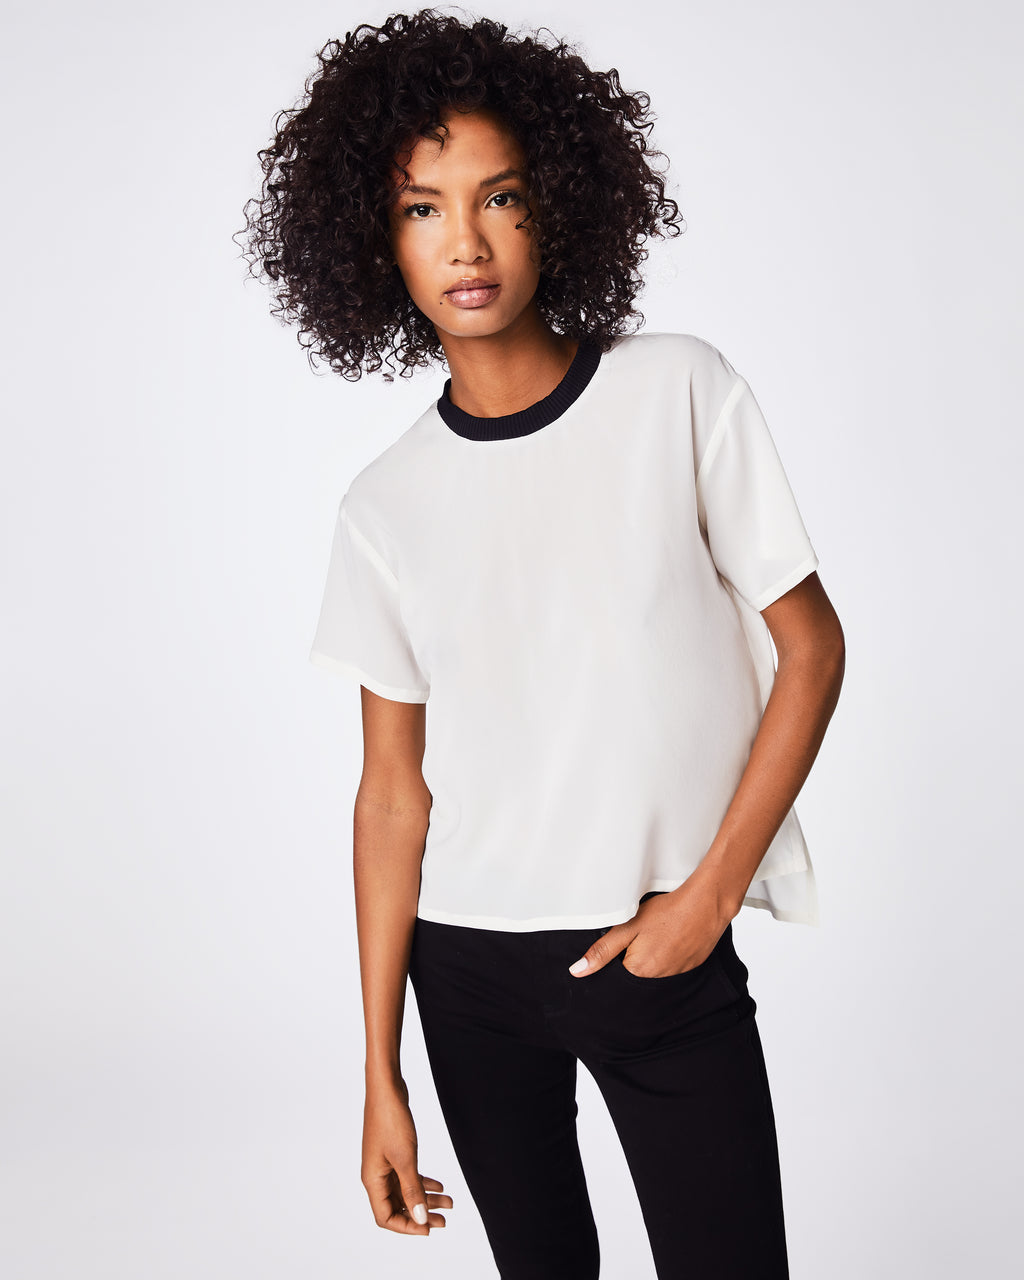 AR10077 - SOLID SILK BLEND T-SHIRT - tops - shirts - Your go-to shirt, every season. A blend of casual and dressy, this solid silk shirt features a ribbed crew neck and loose hem. It goes with just about anything (you'll see).